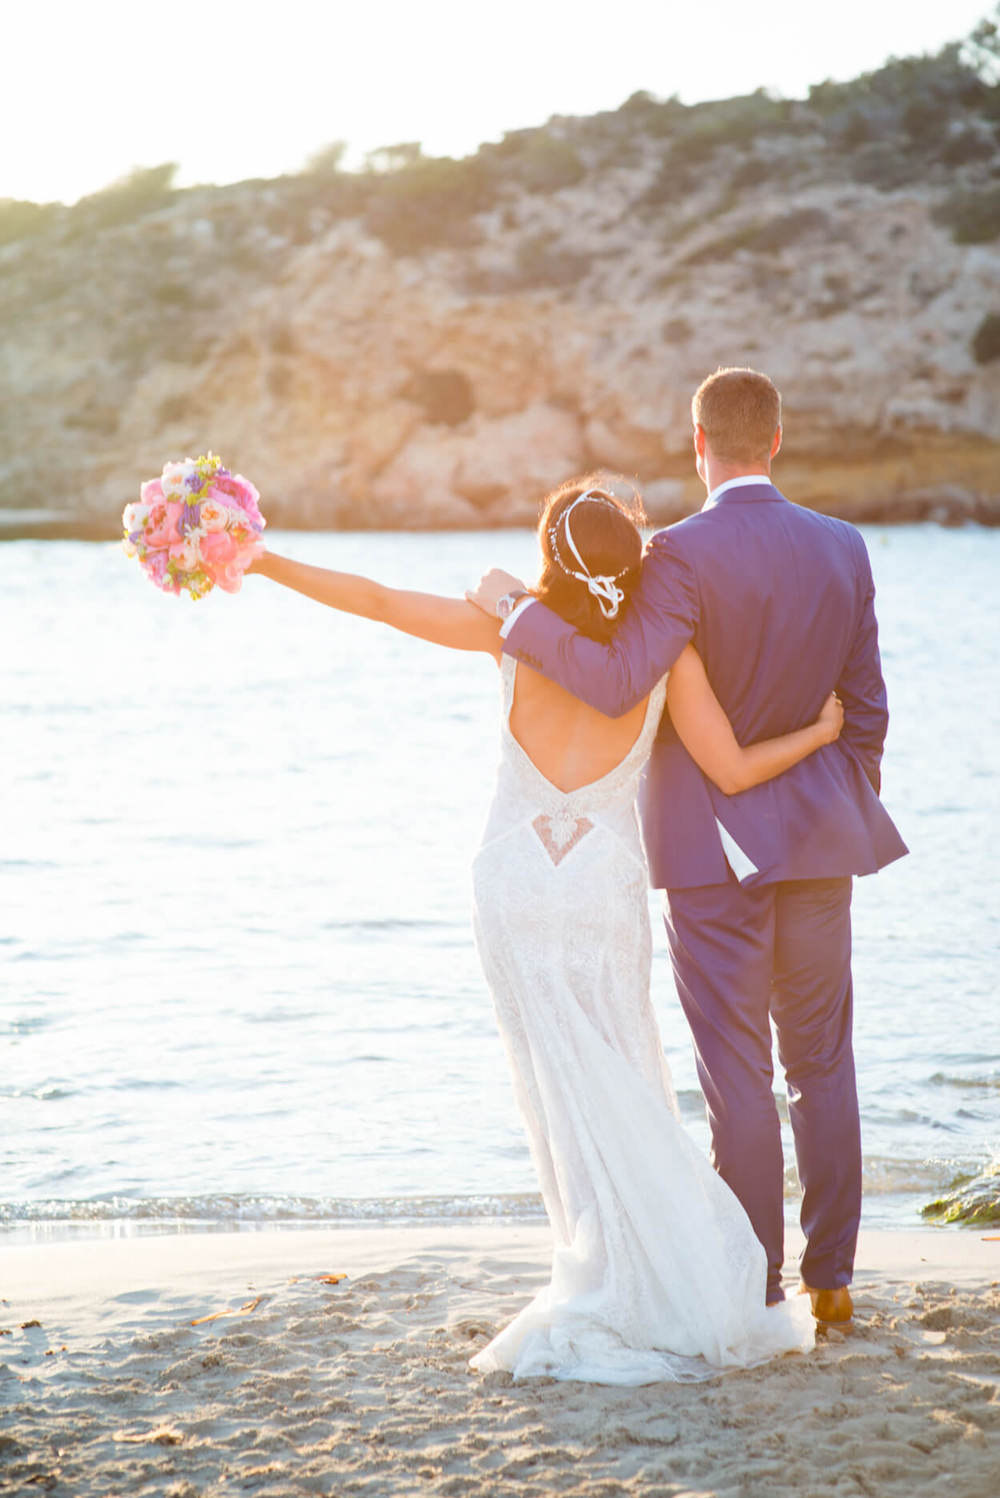 Colourful flowers wedding bouquet bride groom kiss beach venue sunset view Galia Lahav